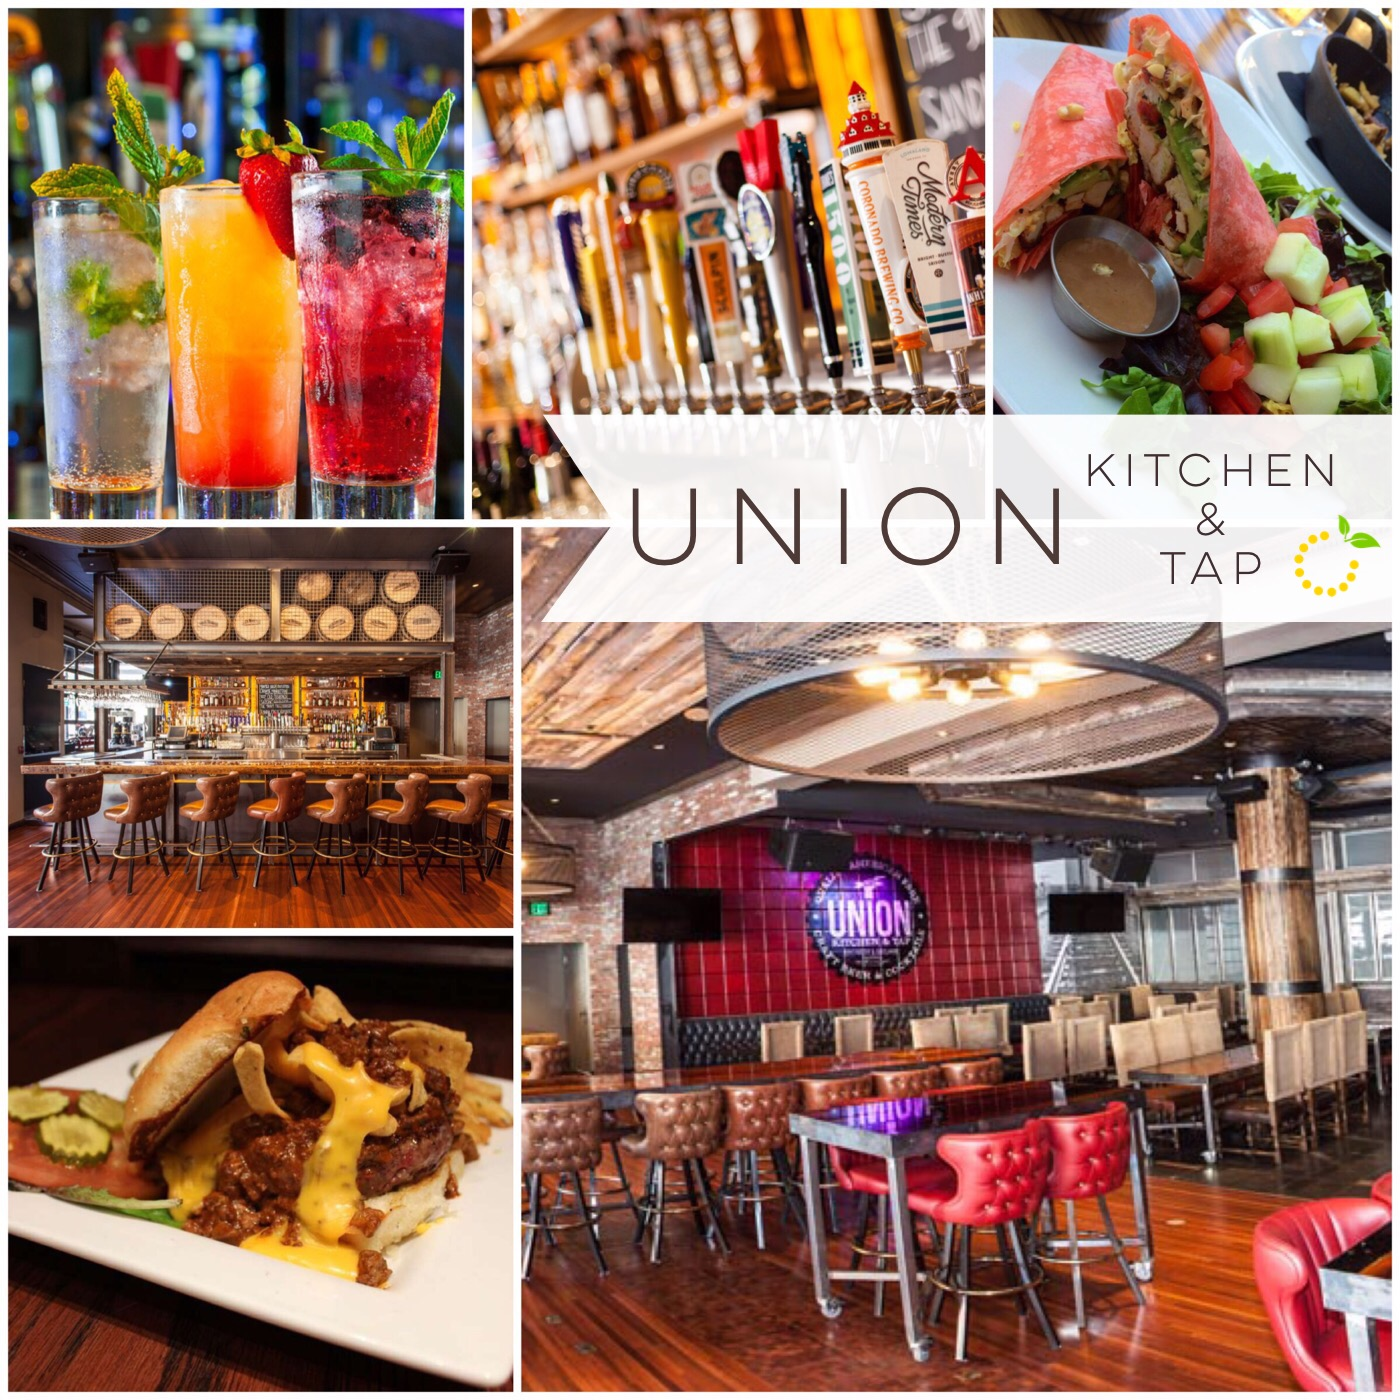 UNION Kitchen sweetlemonmade.com